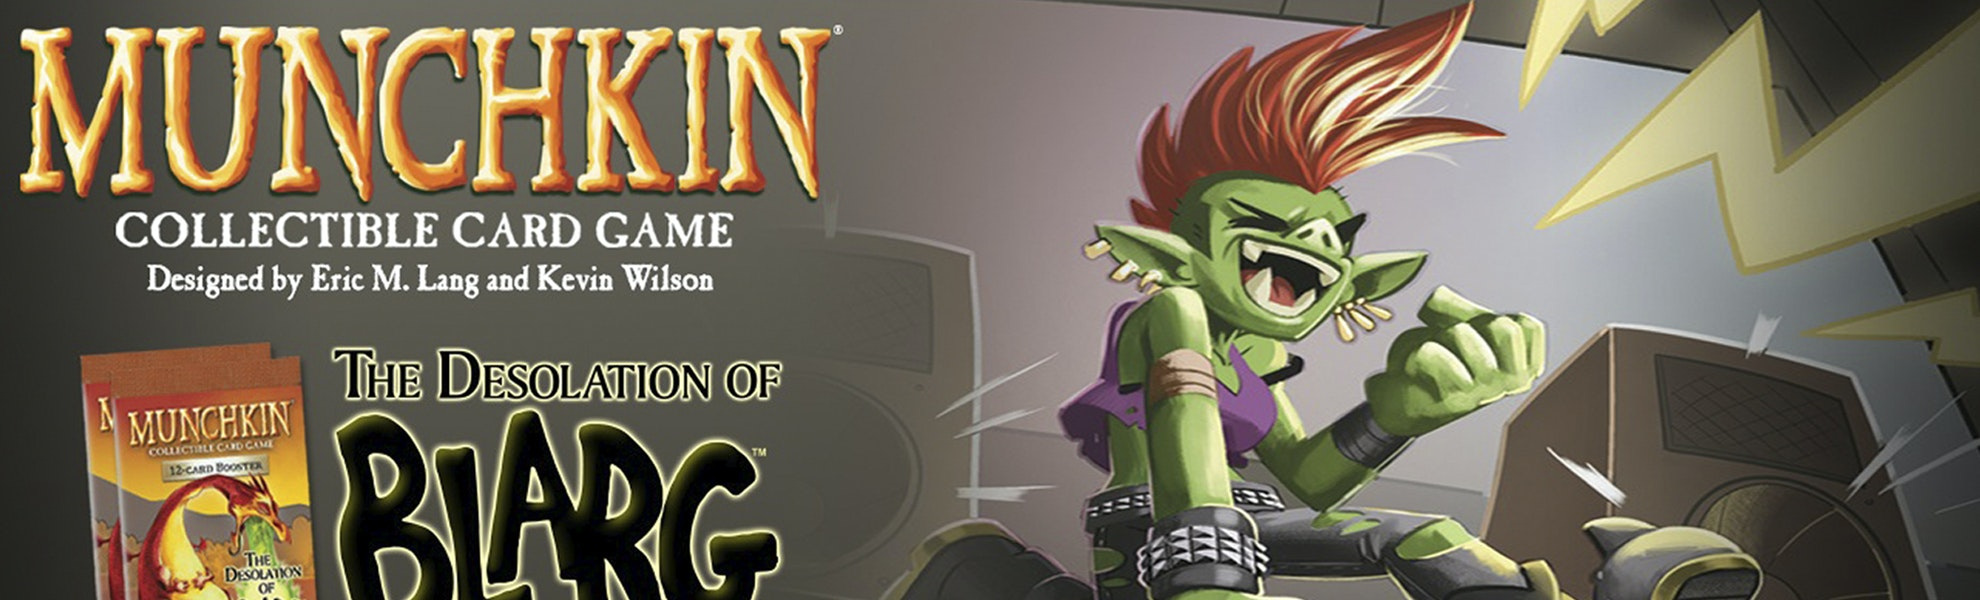 Munchkin CCG Desolation of Blarg Booster Box